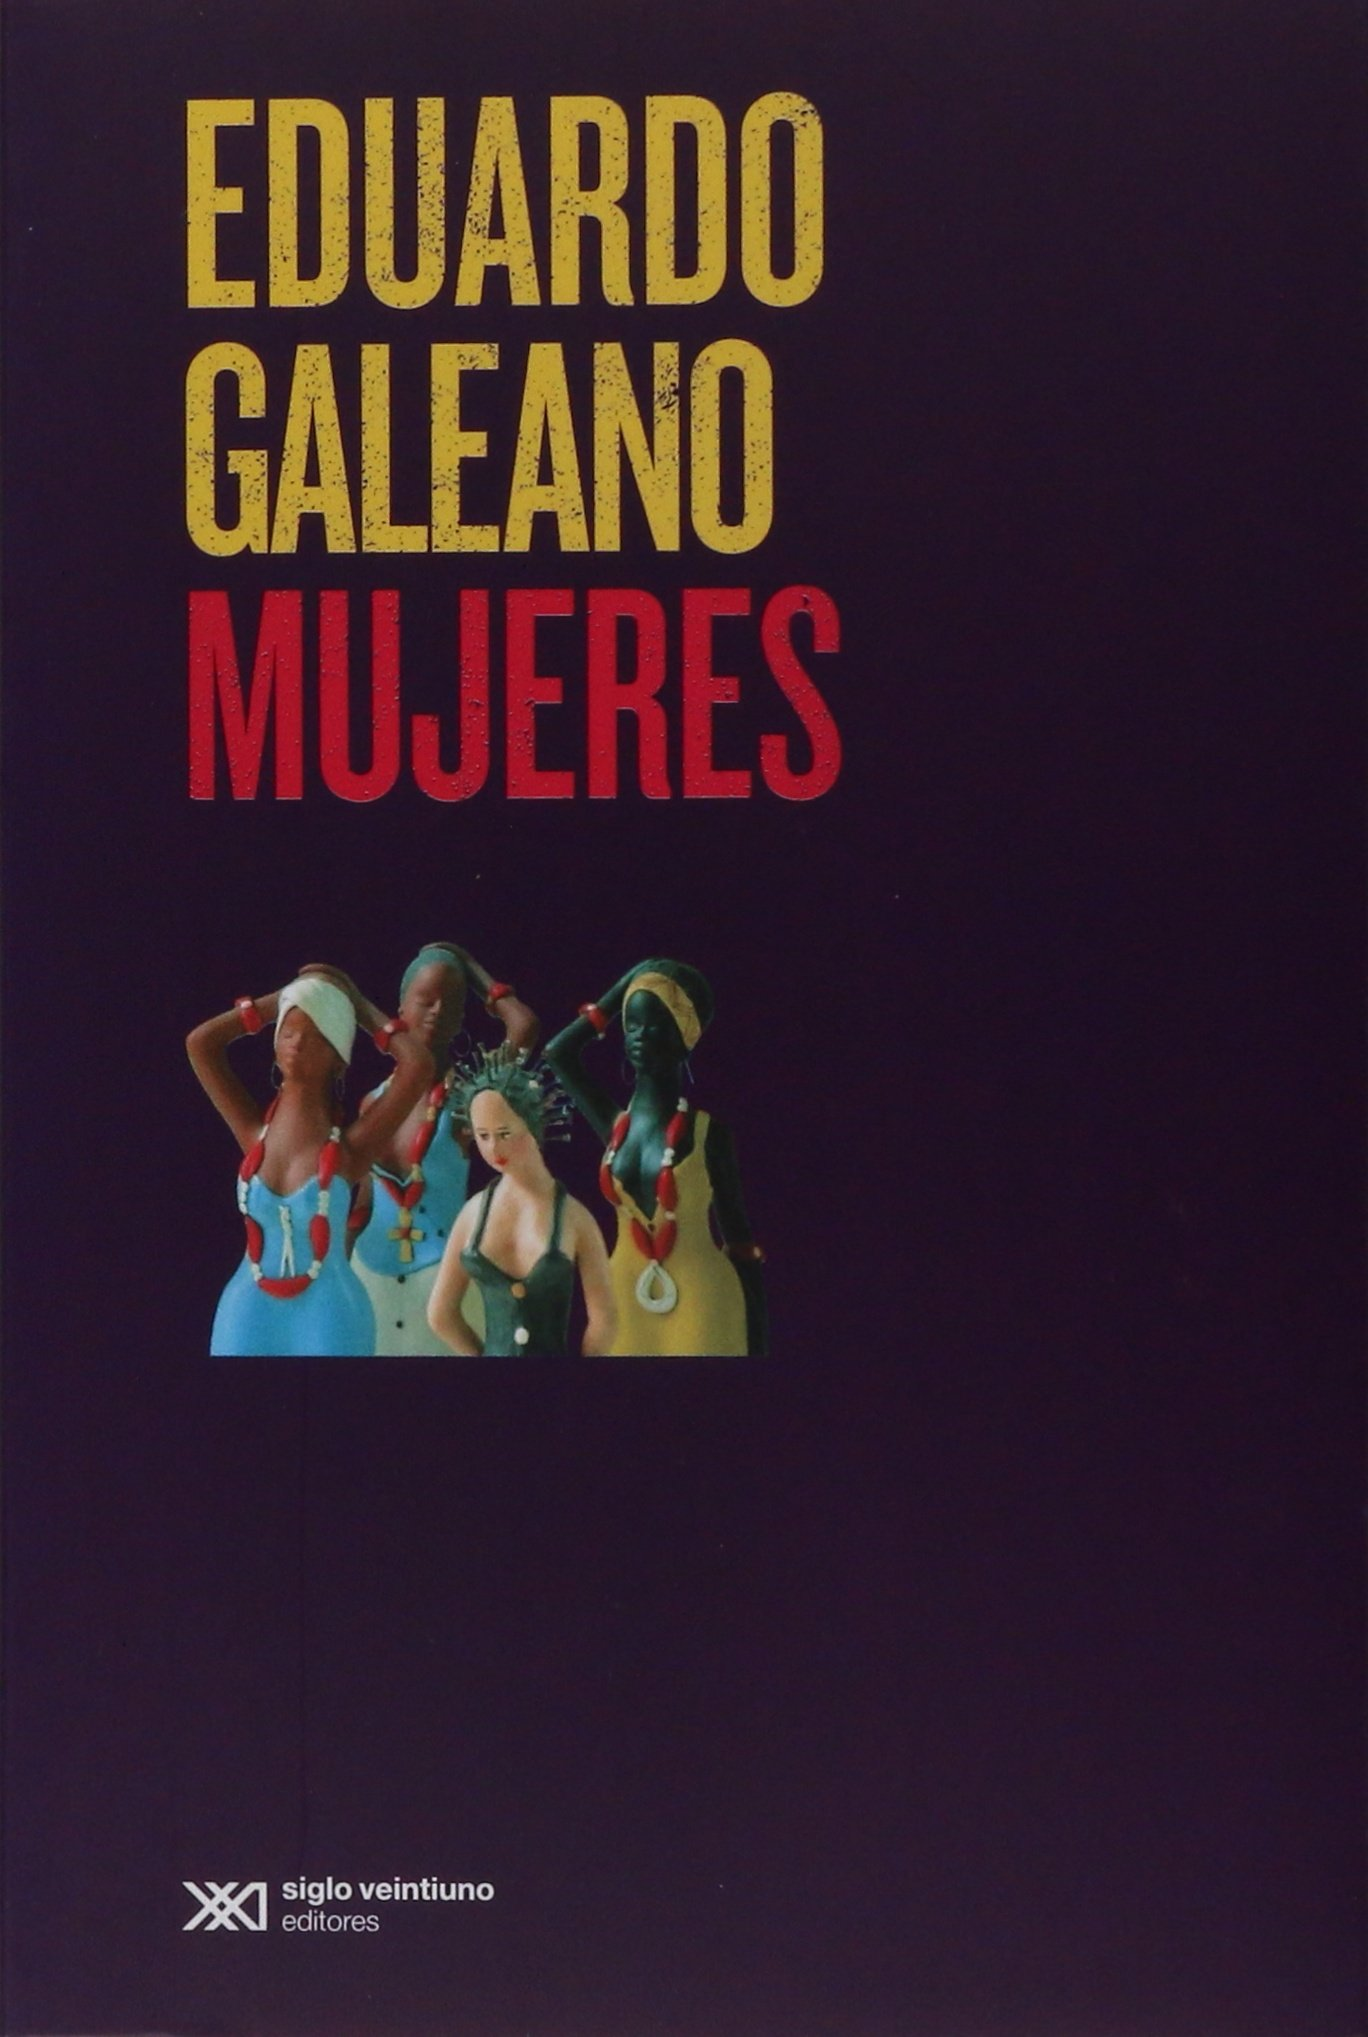 MUJERES: Eduardo Galeano: 9786070308406: Amazon.com: Books